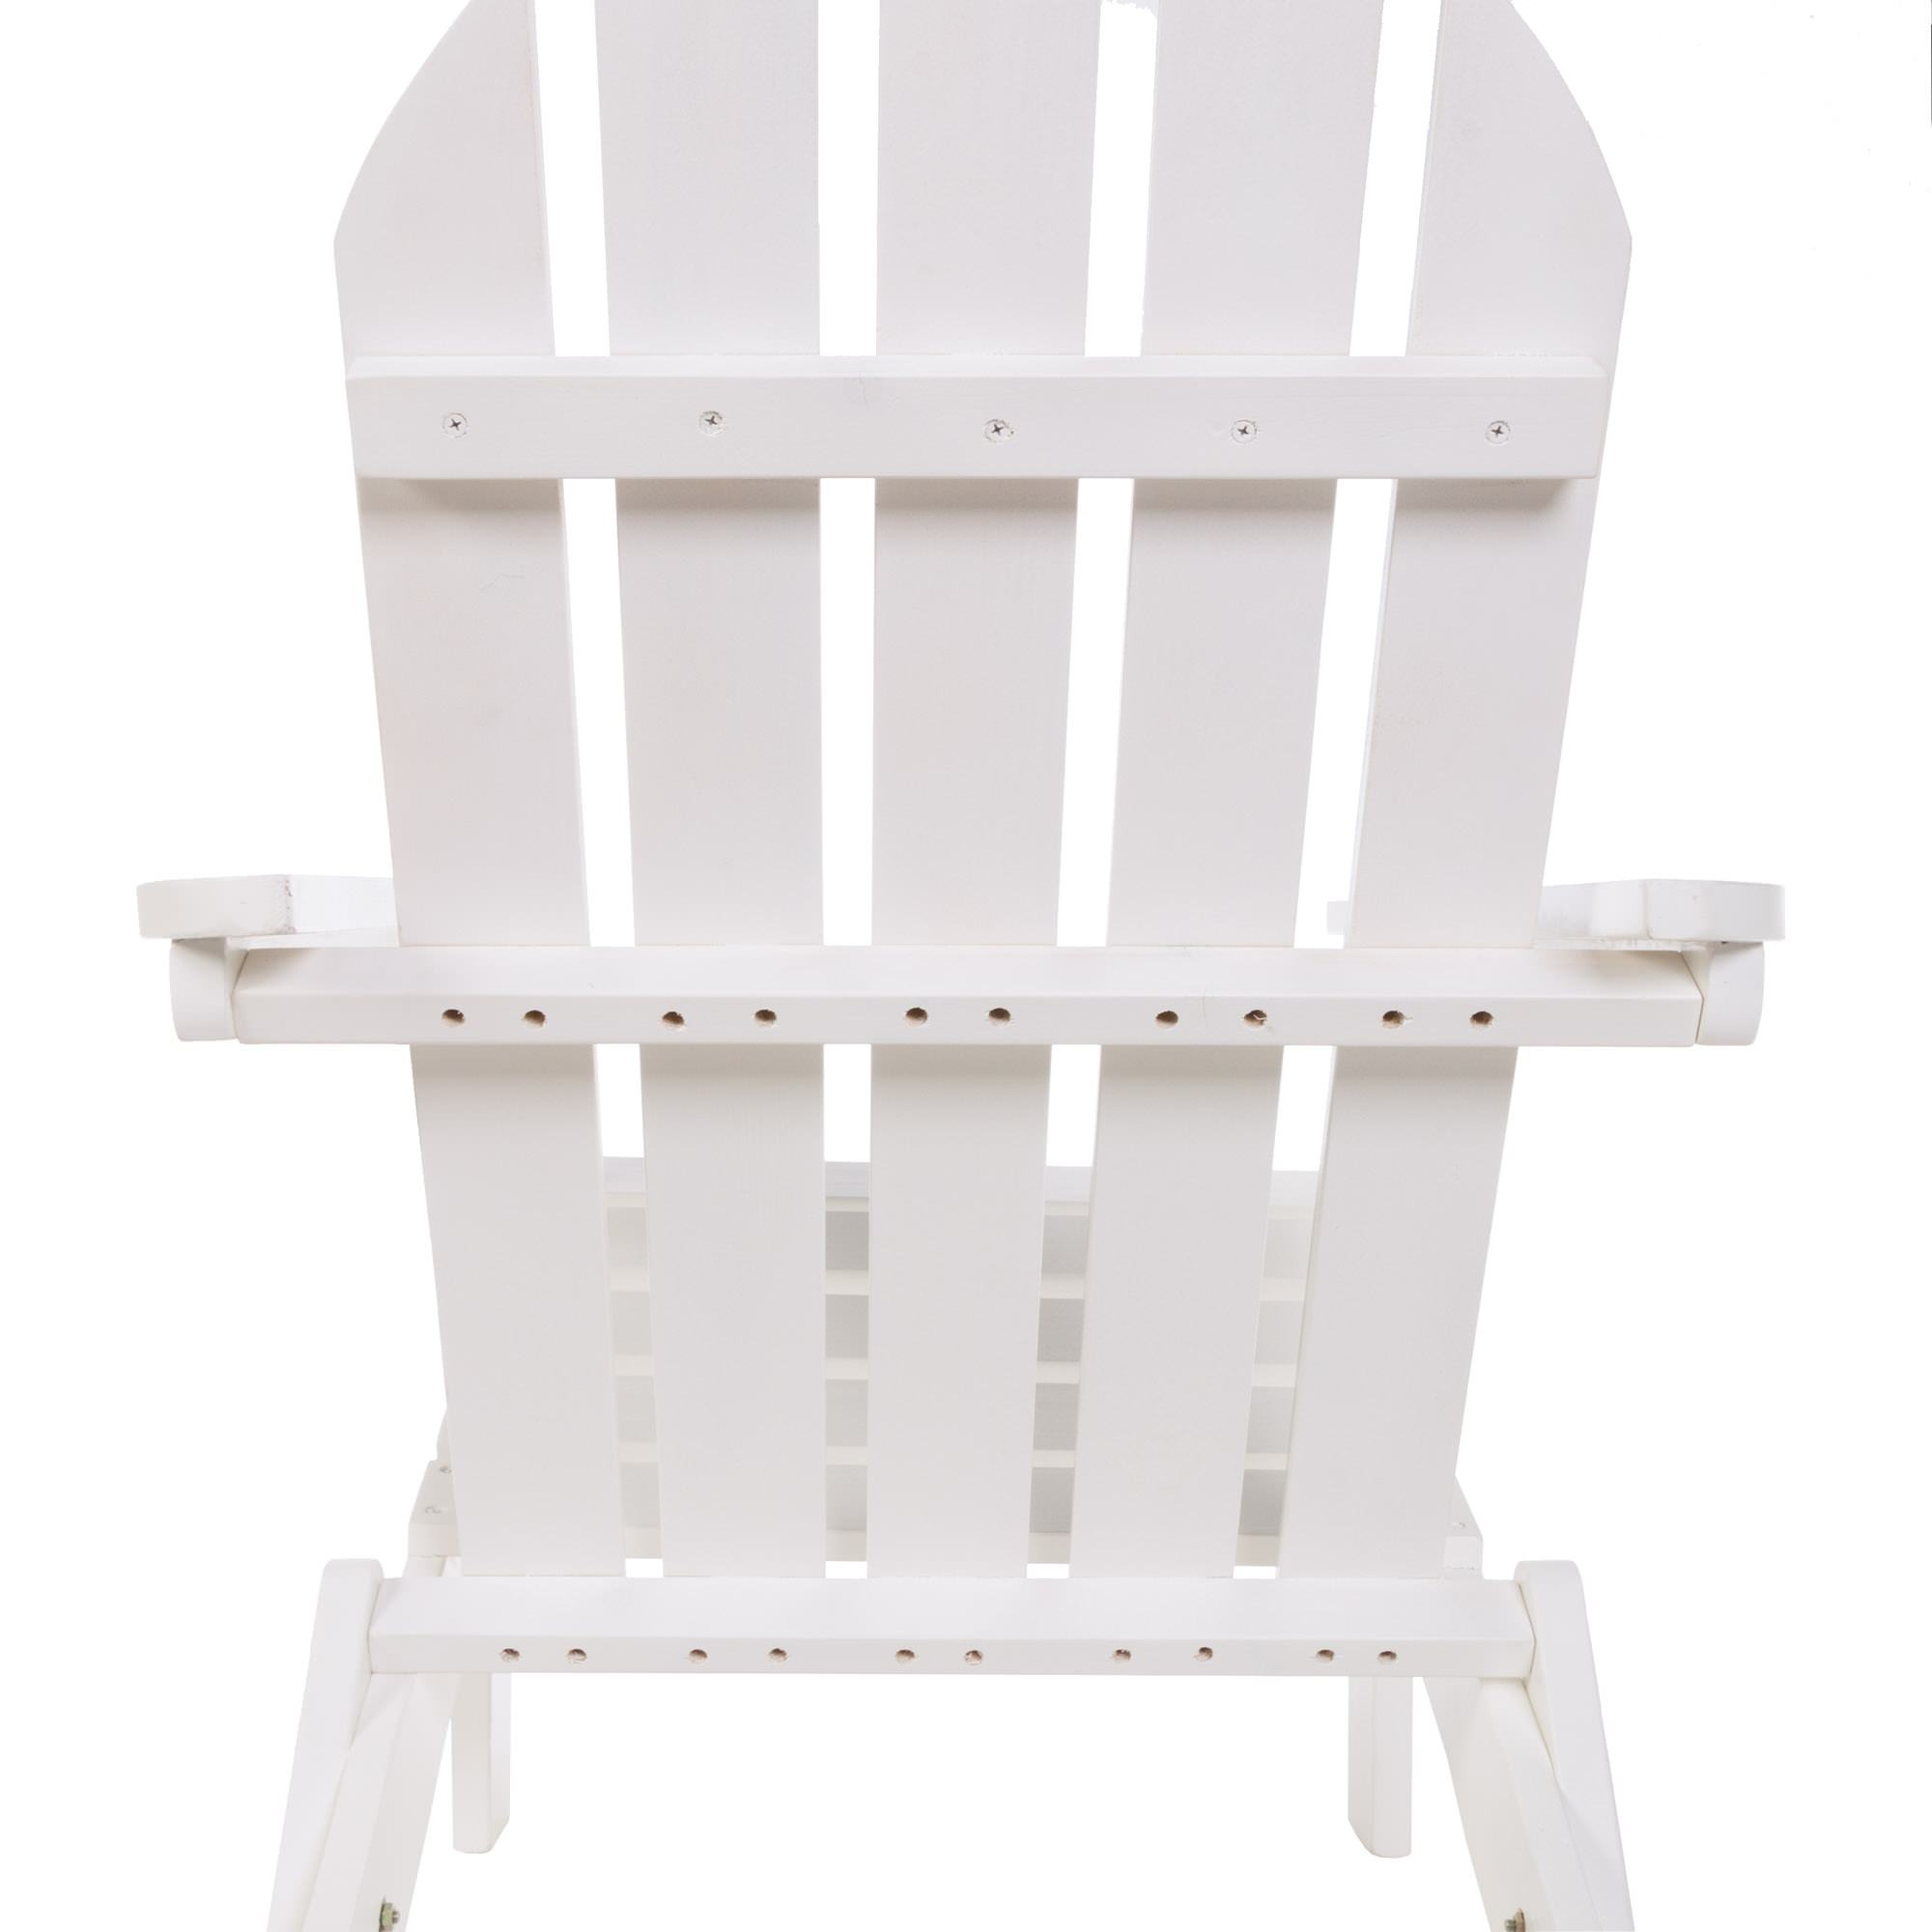 ... Exclusive Folding Wood Adirondack Chair - Painted White  sc 1 st  DFOhome & Exclusive Folding Wood Adirondack Chair - Painted White|Essentials ...